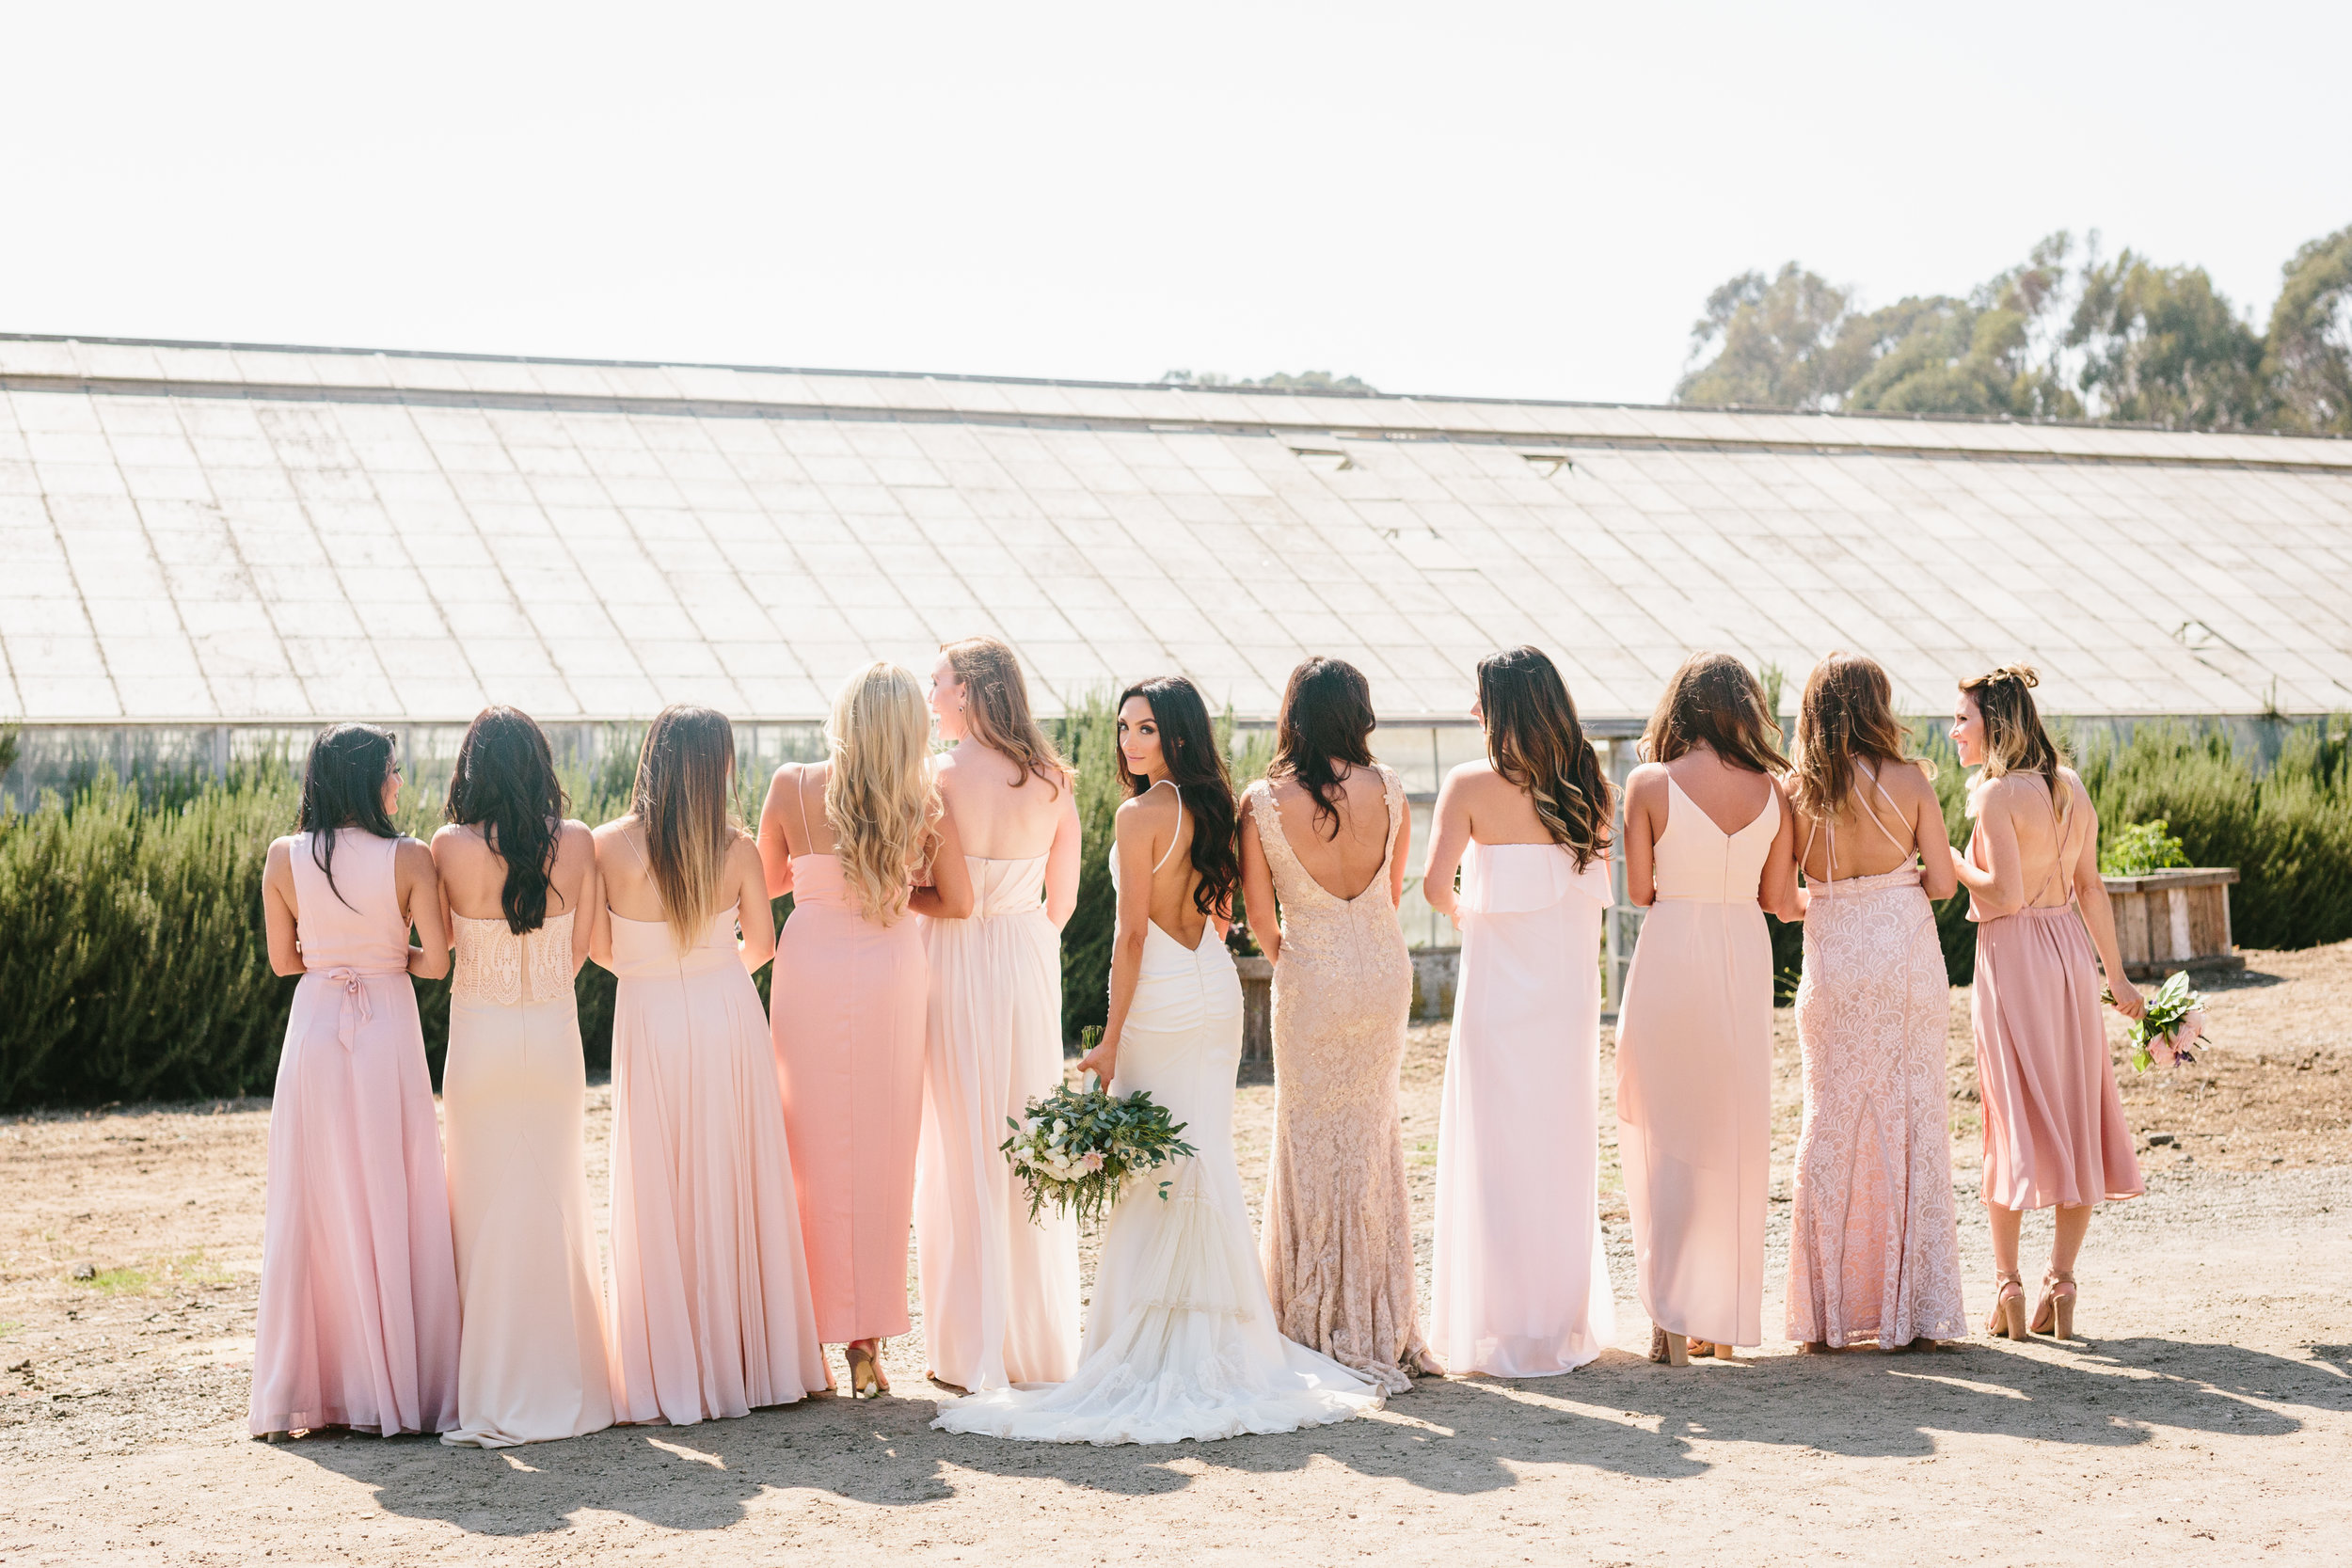 bridesmaids wedding Santa Barbara Destination Wedding Planner Designer Orchard Farm